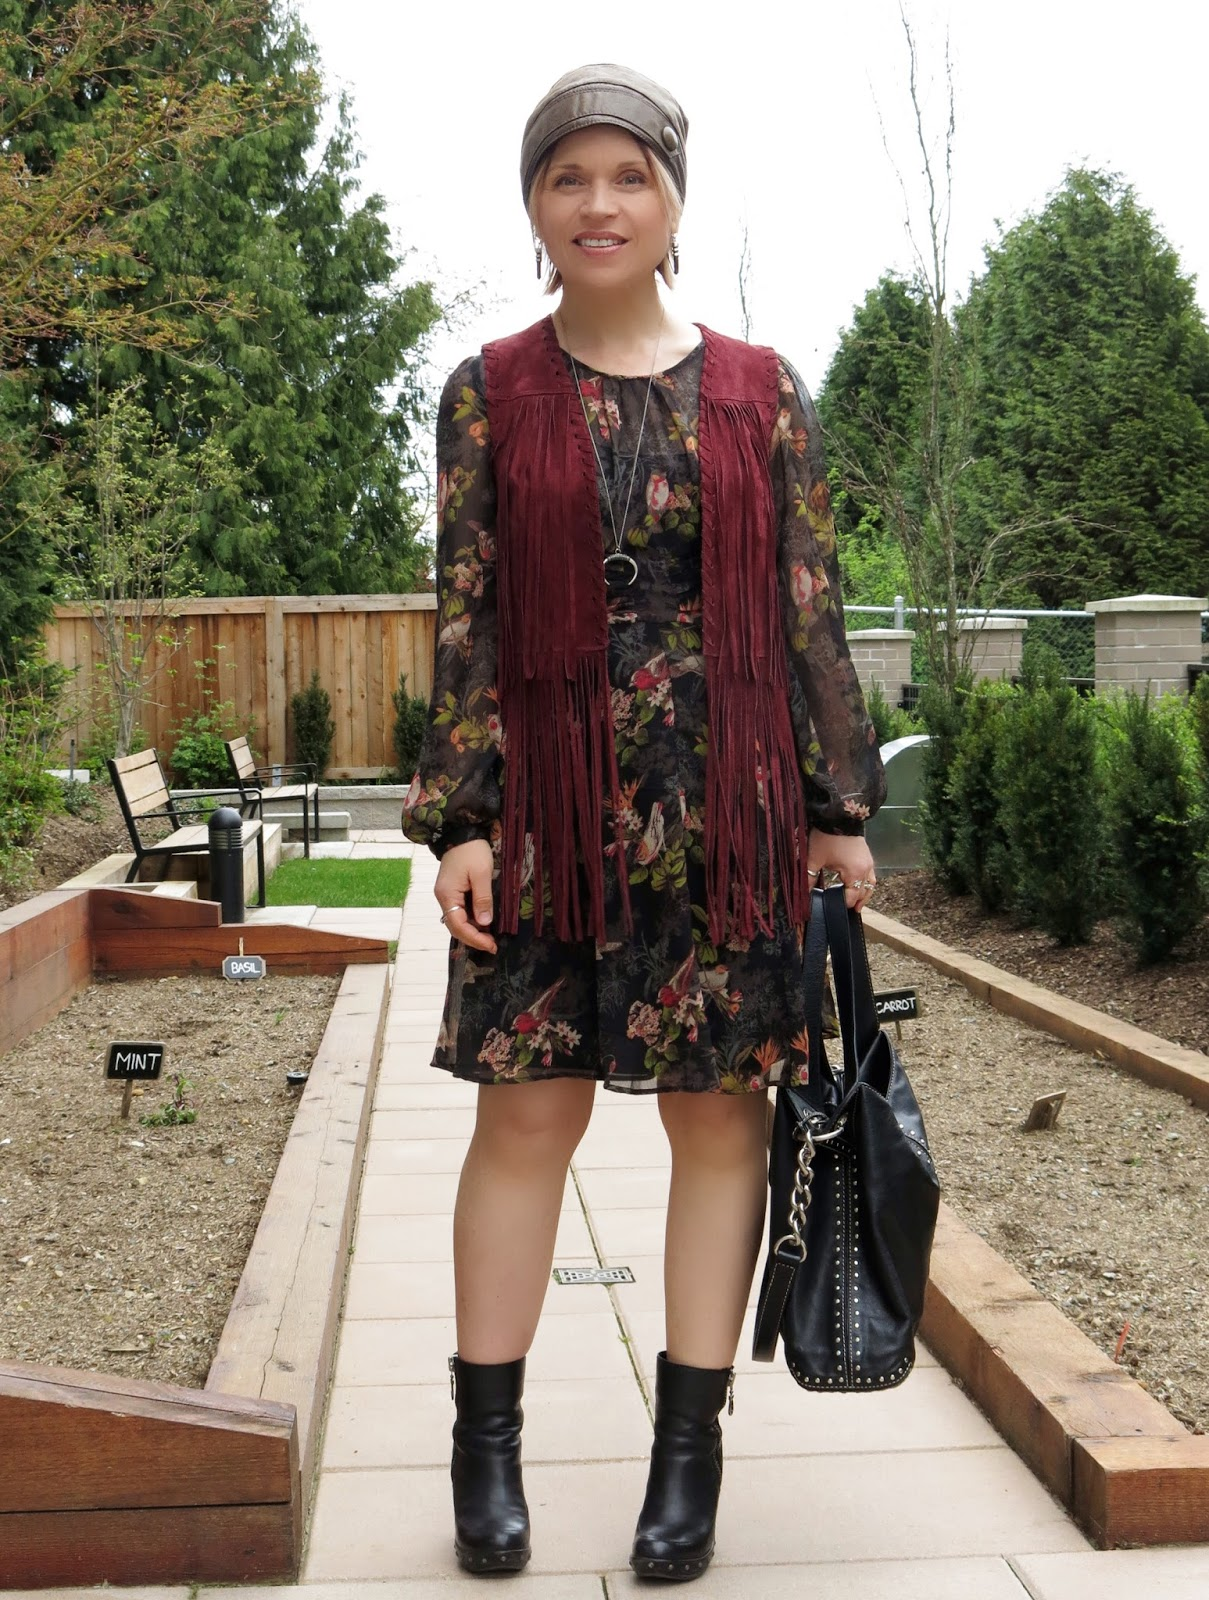 styling a floral dress with a fringy suede vest, platform booties, and leather beanie